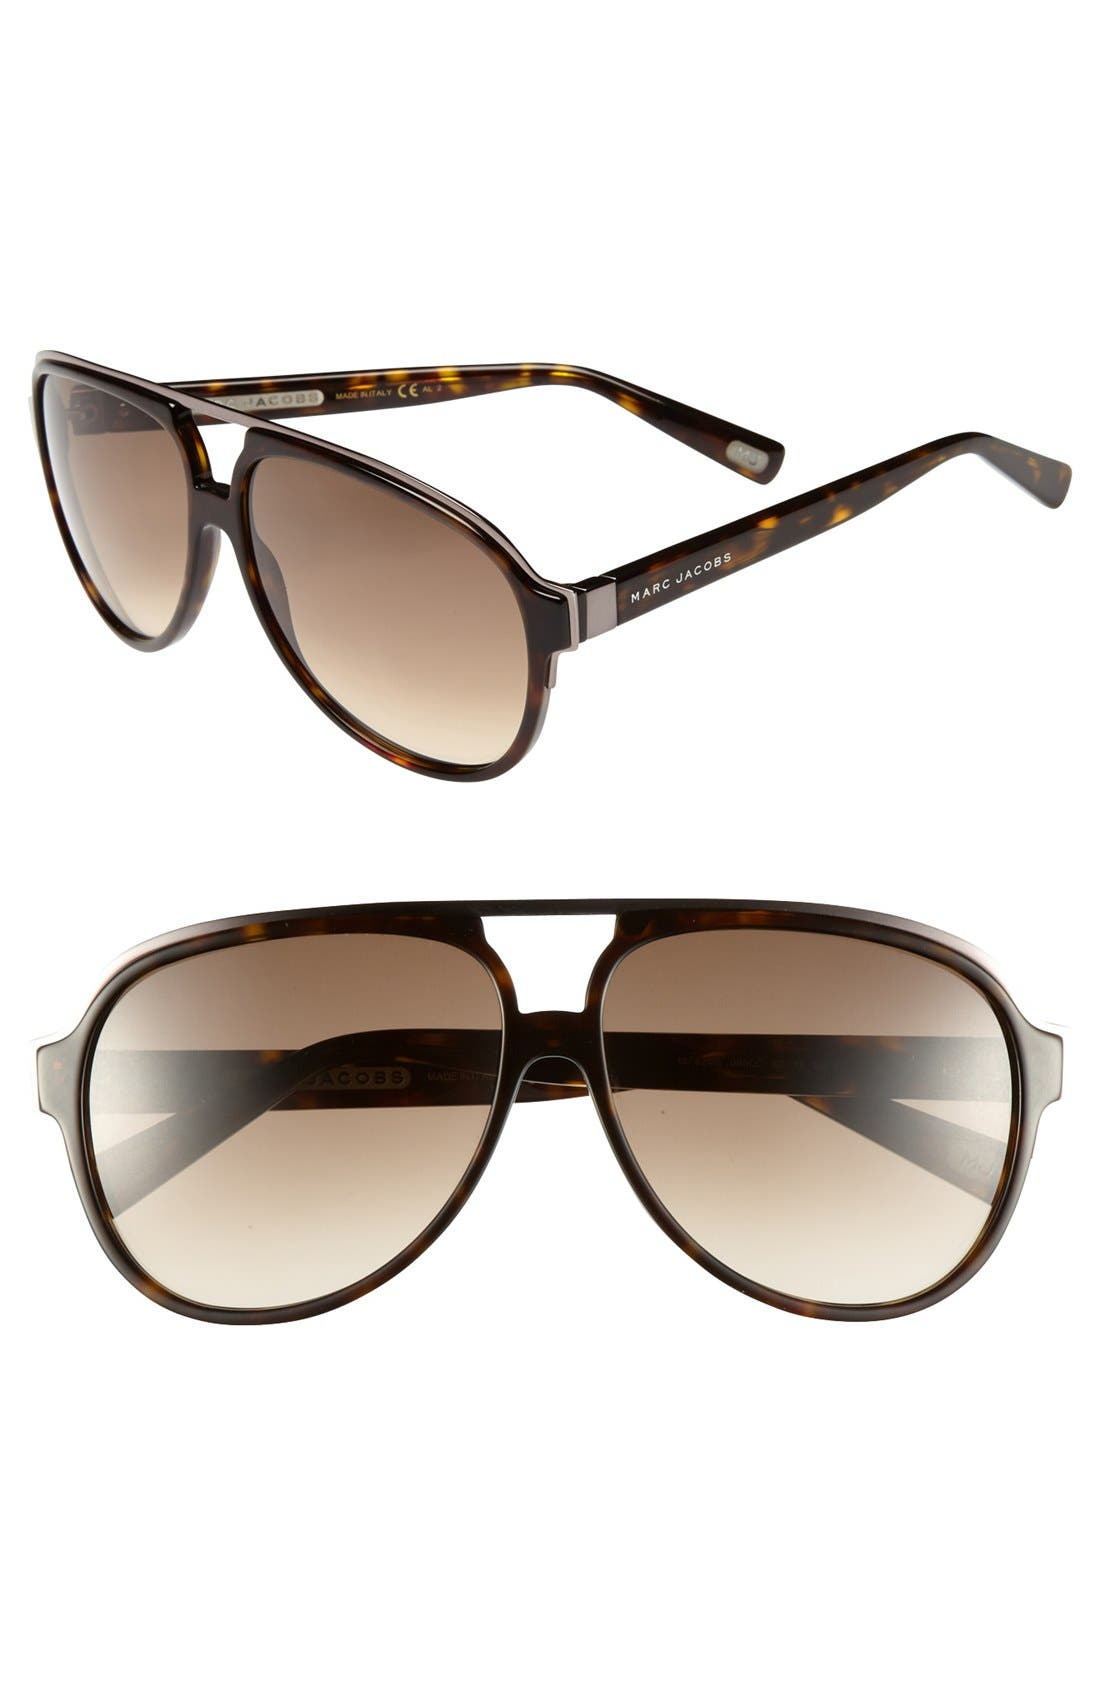 Main Image - MARC JACOBS 60mm Sunglasses